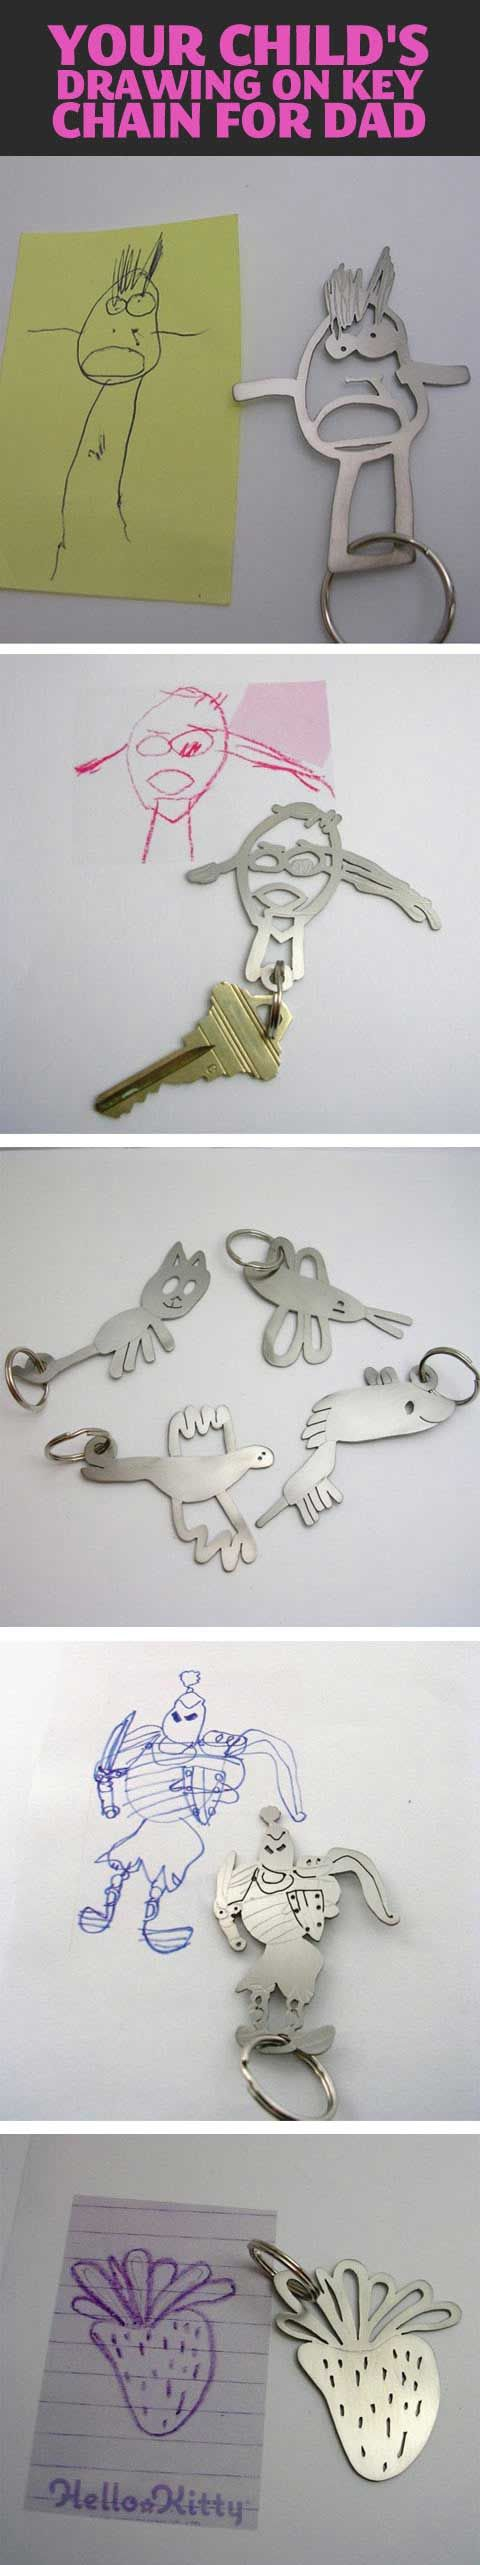 Your child's drawing on a key chain…